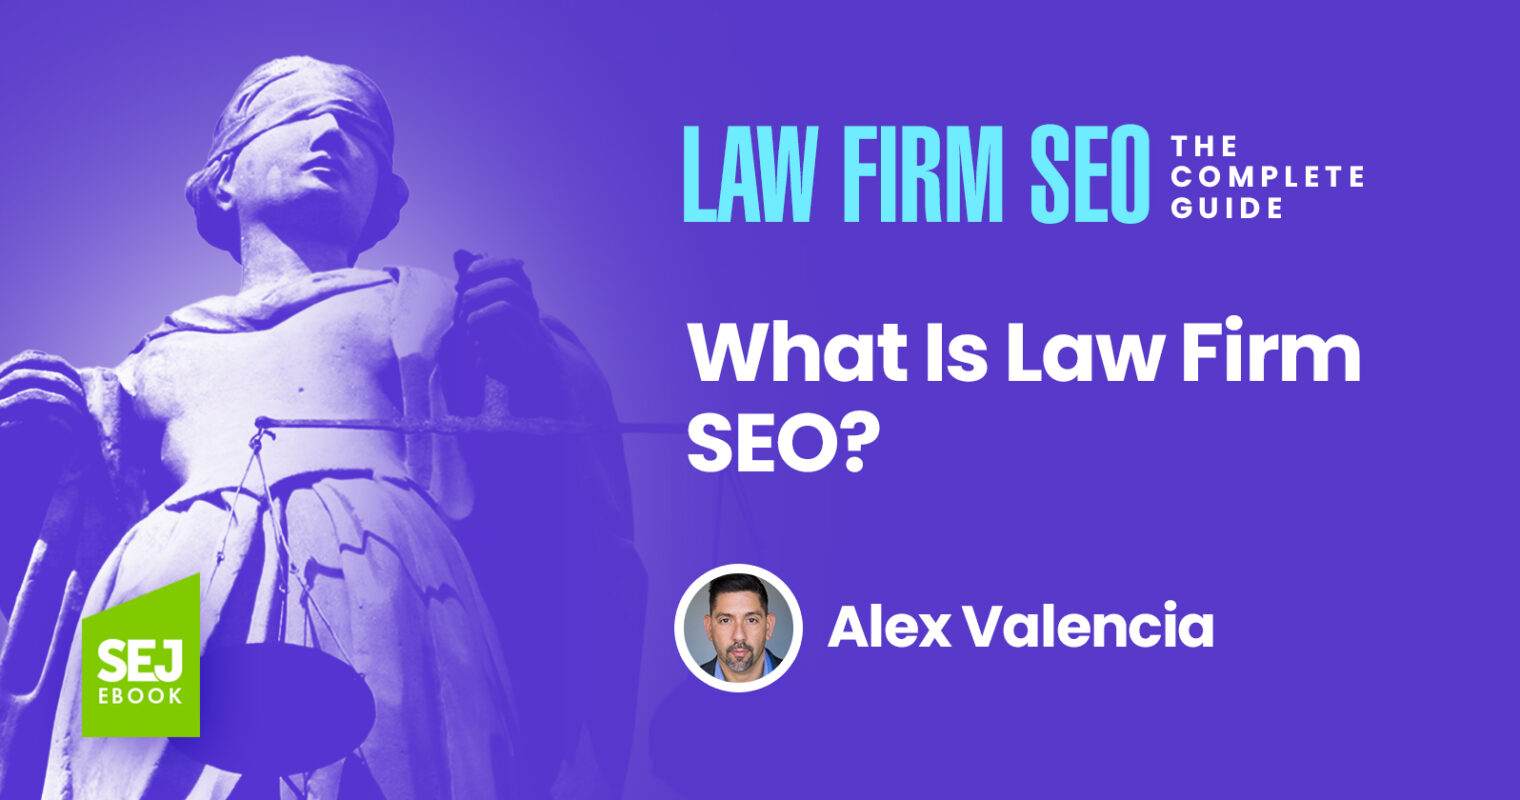 What Is Law Firm SEO?